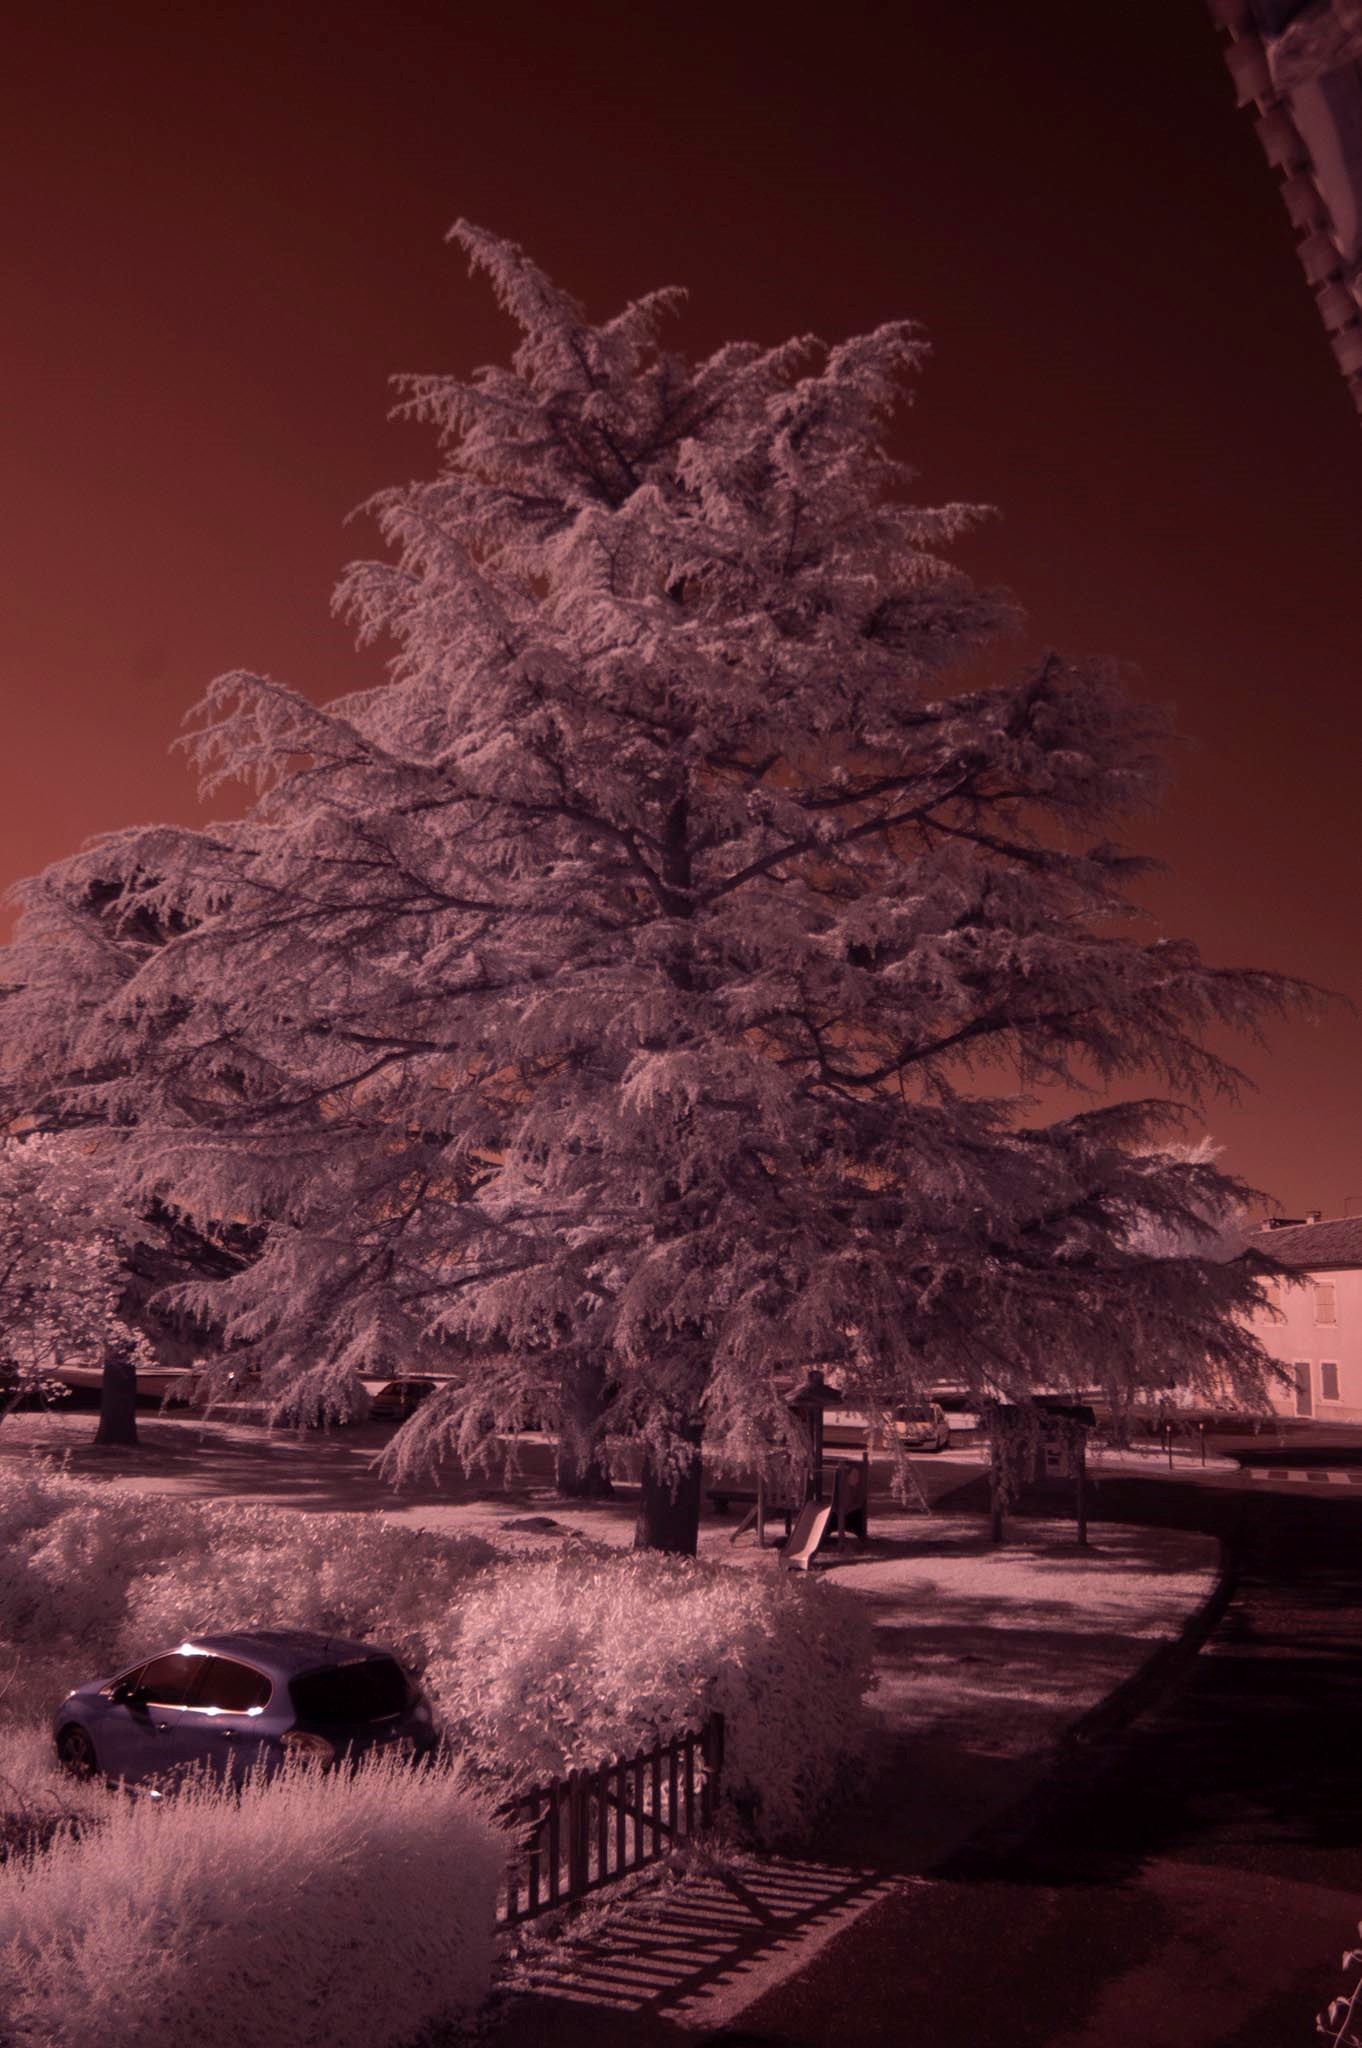 IR image as shot with converted D100.